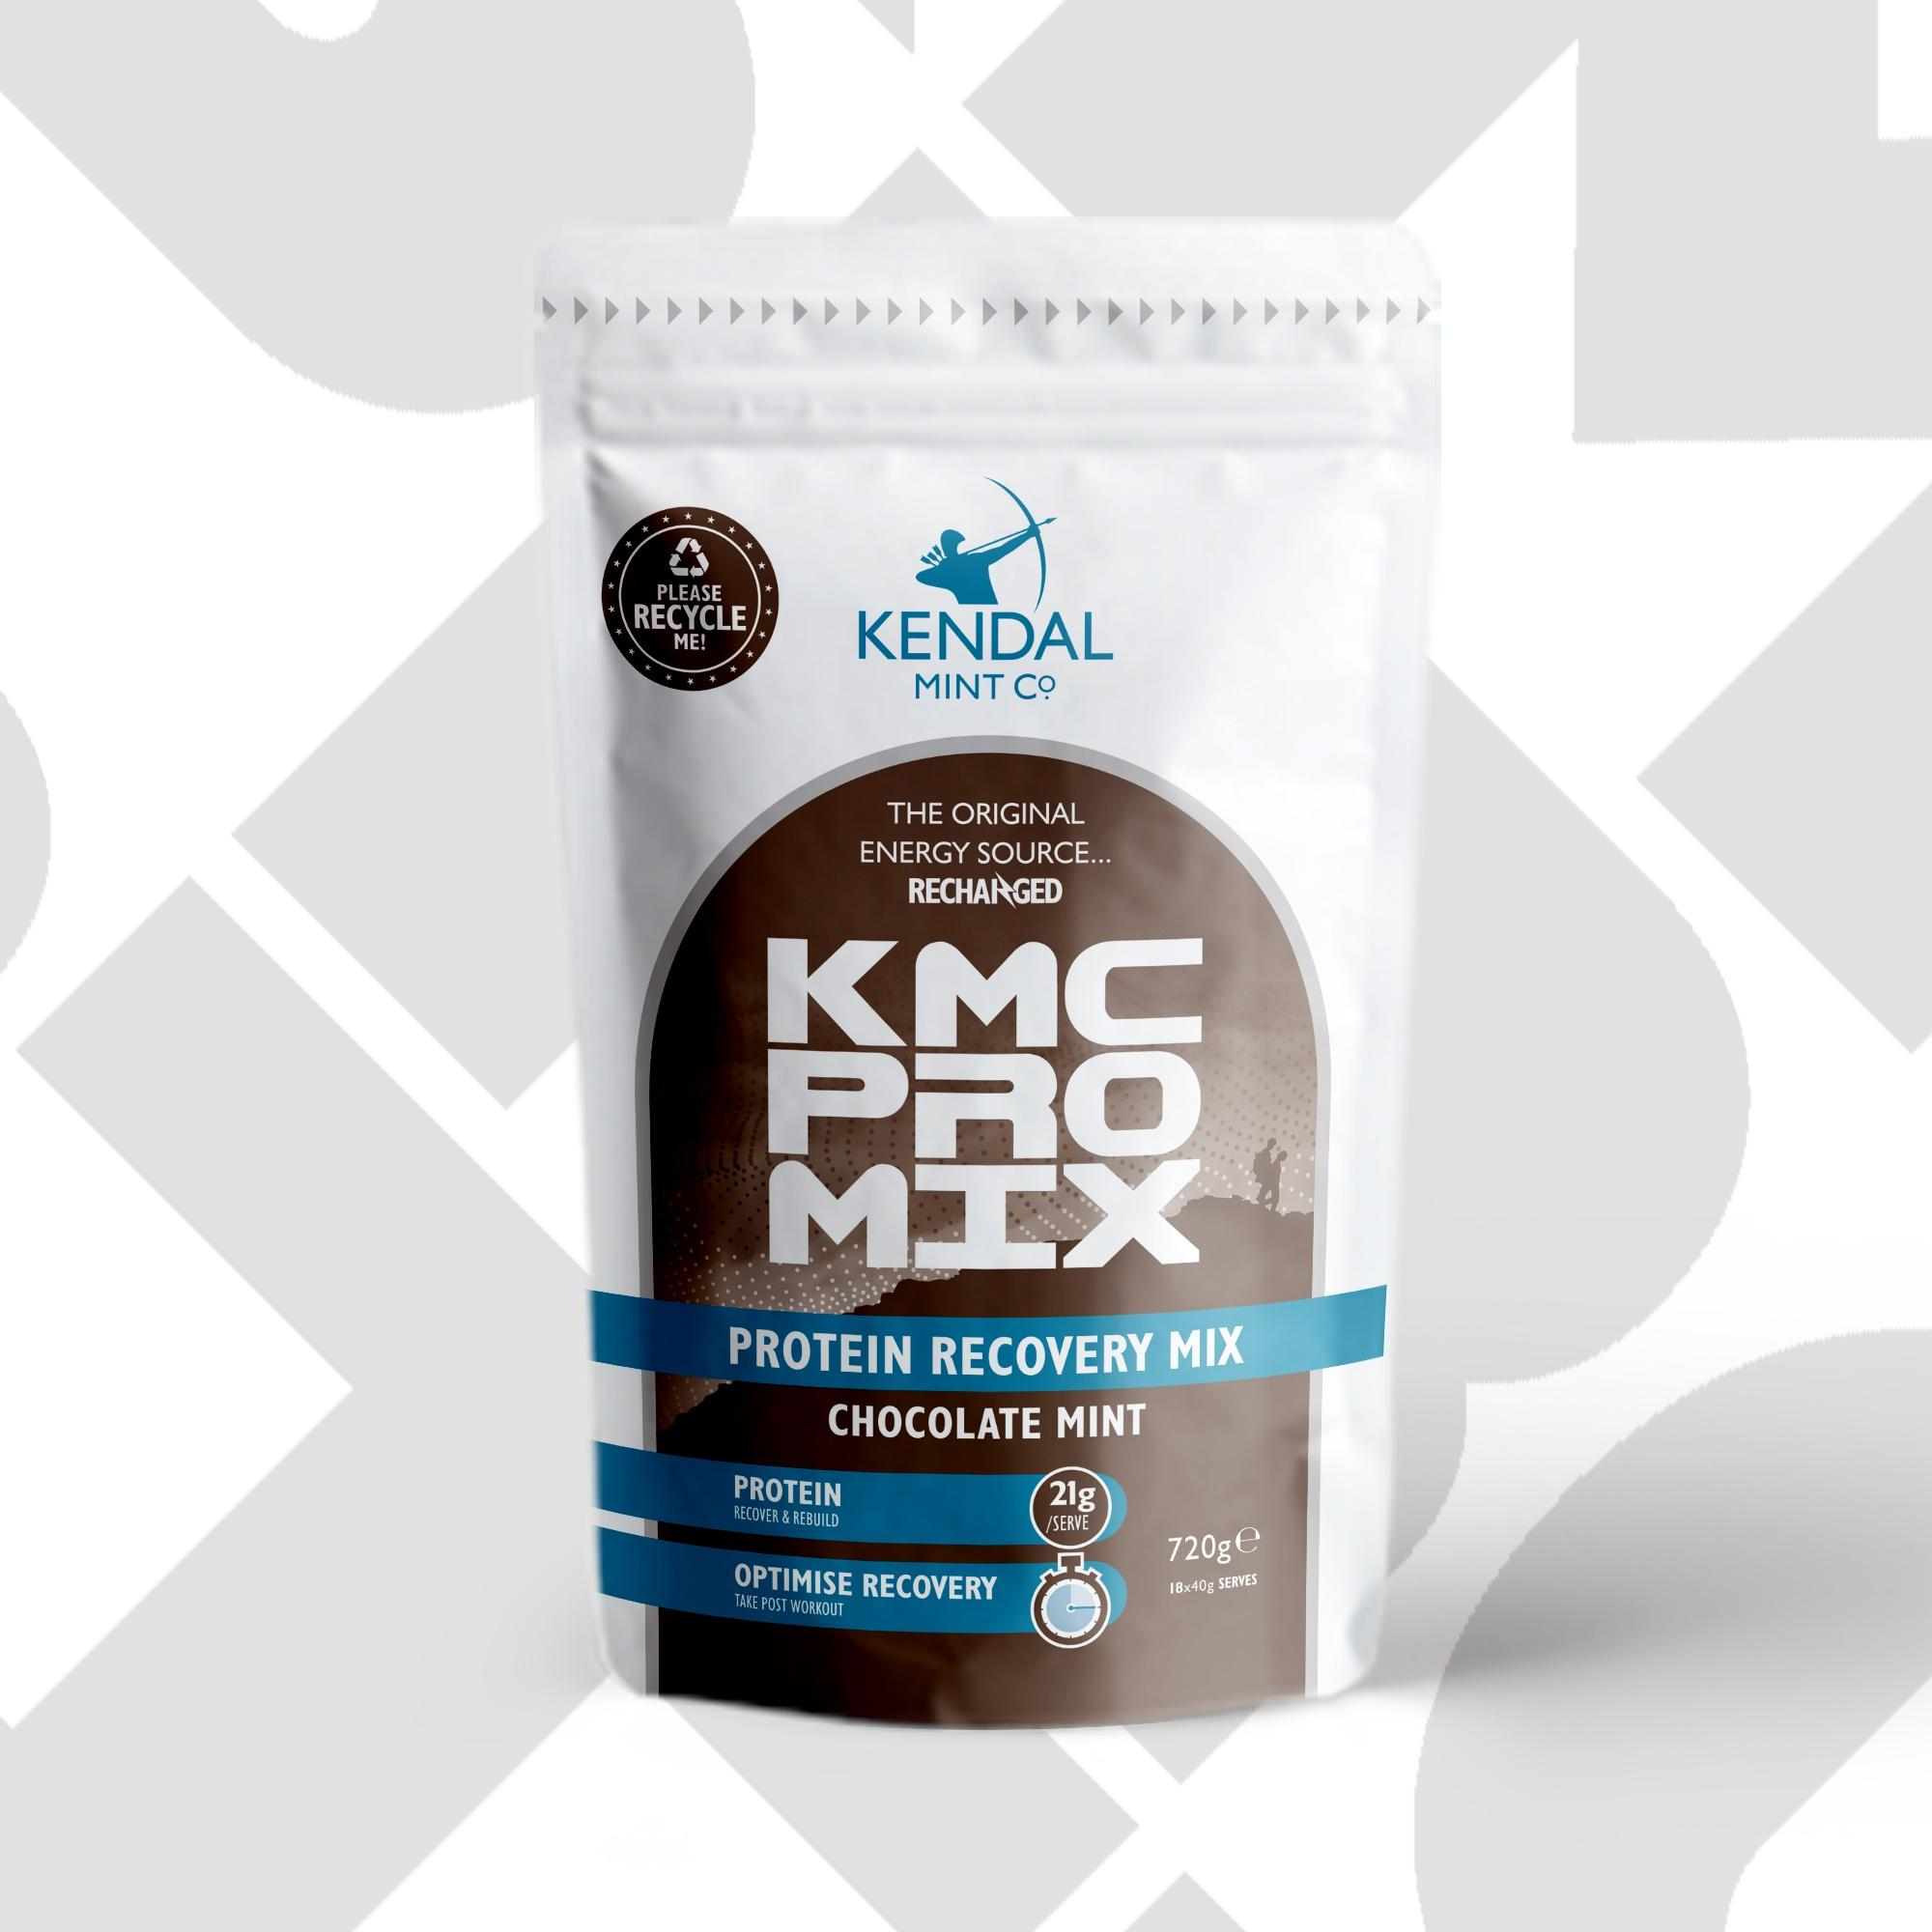 NEW! KMC PRO MIX Protein Recovery 100% Recyclable Bulk Pouch 720g/ 18 Serves